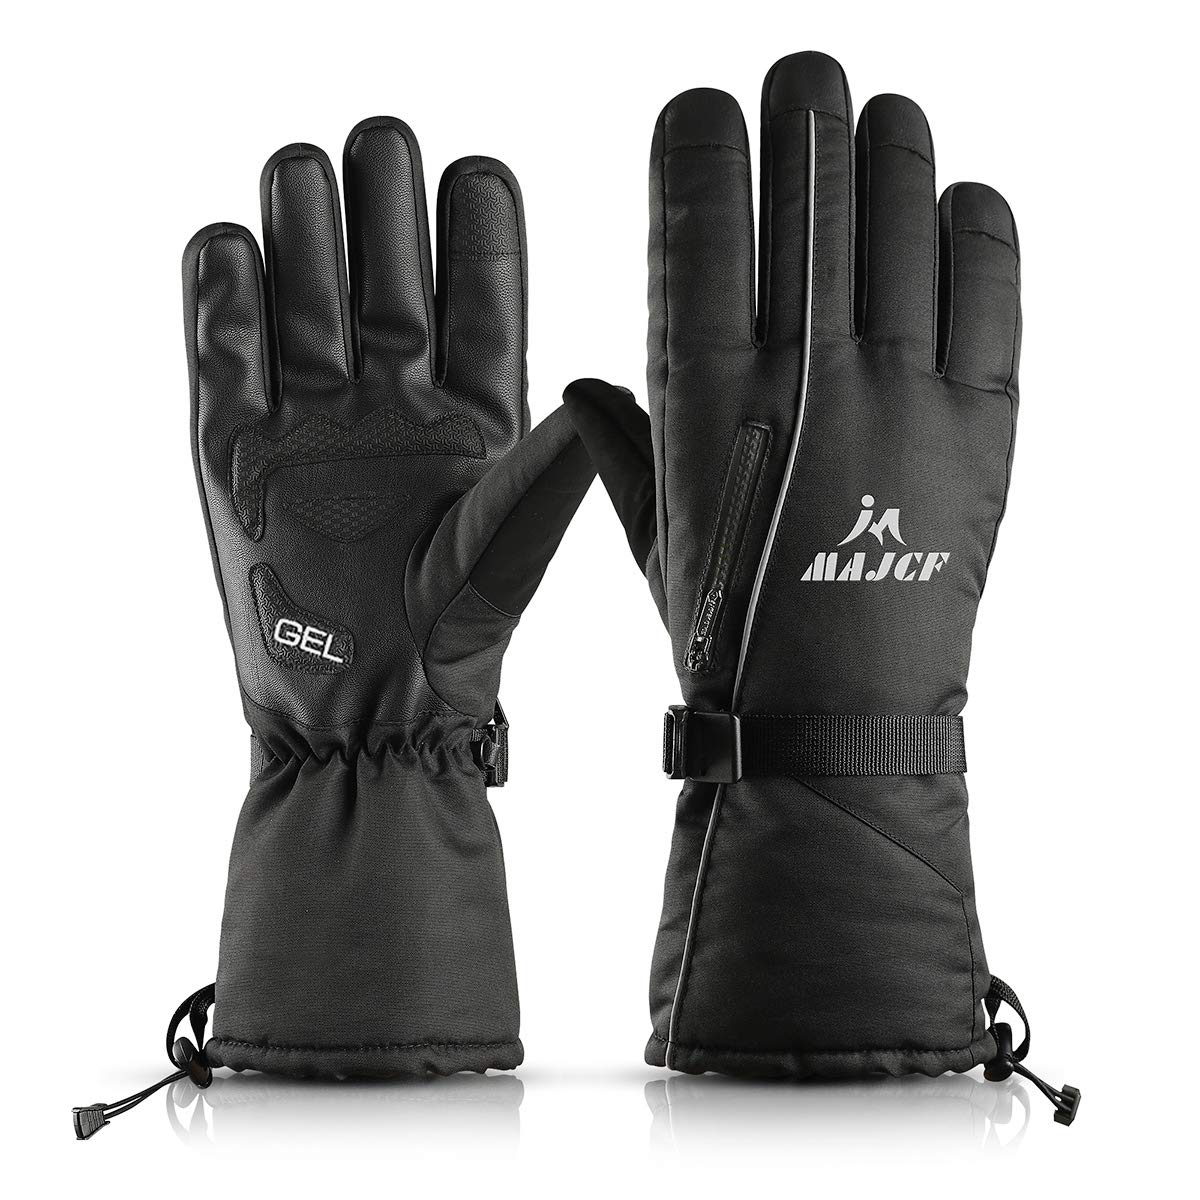 MAJCF Ski Gloves - Winter Warm 3M Insulation Waterproof Touchscreen Thermal Gloves (Black, L)